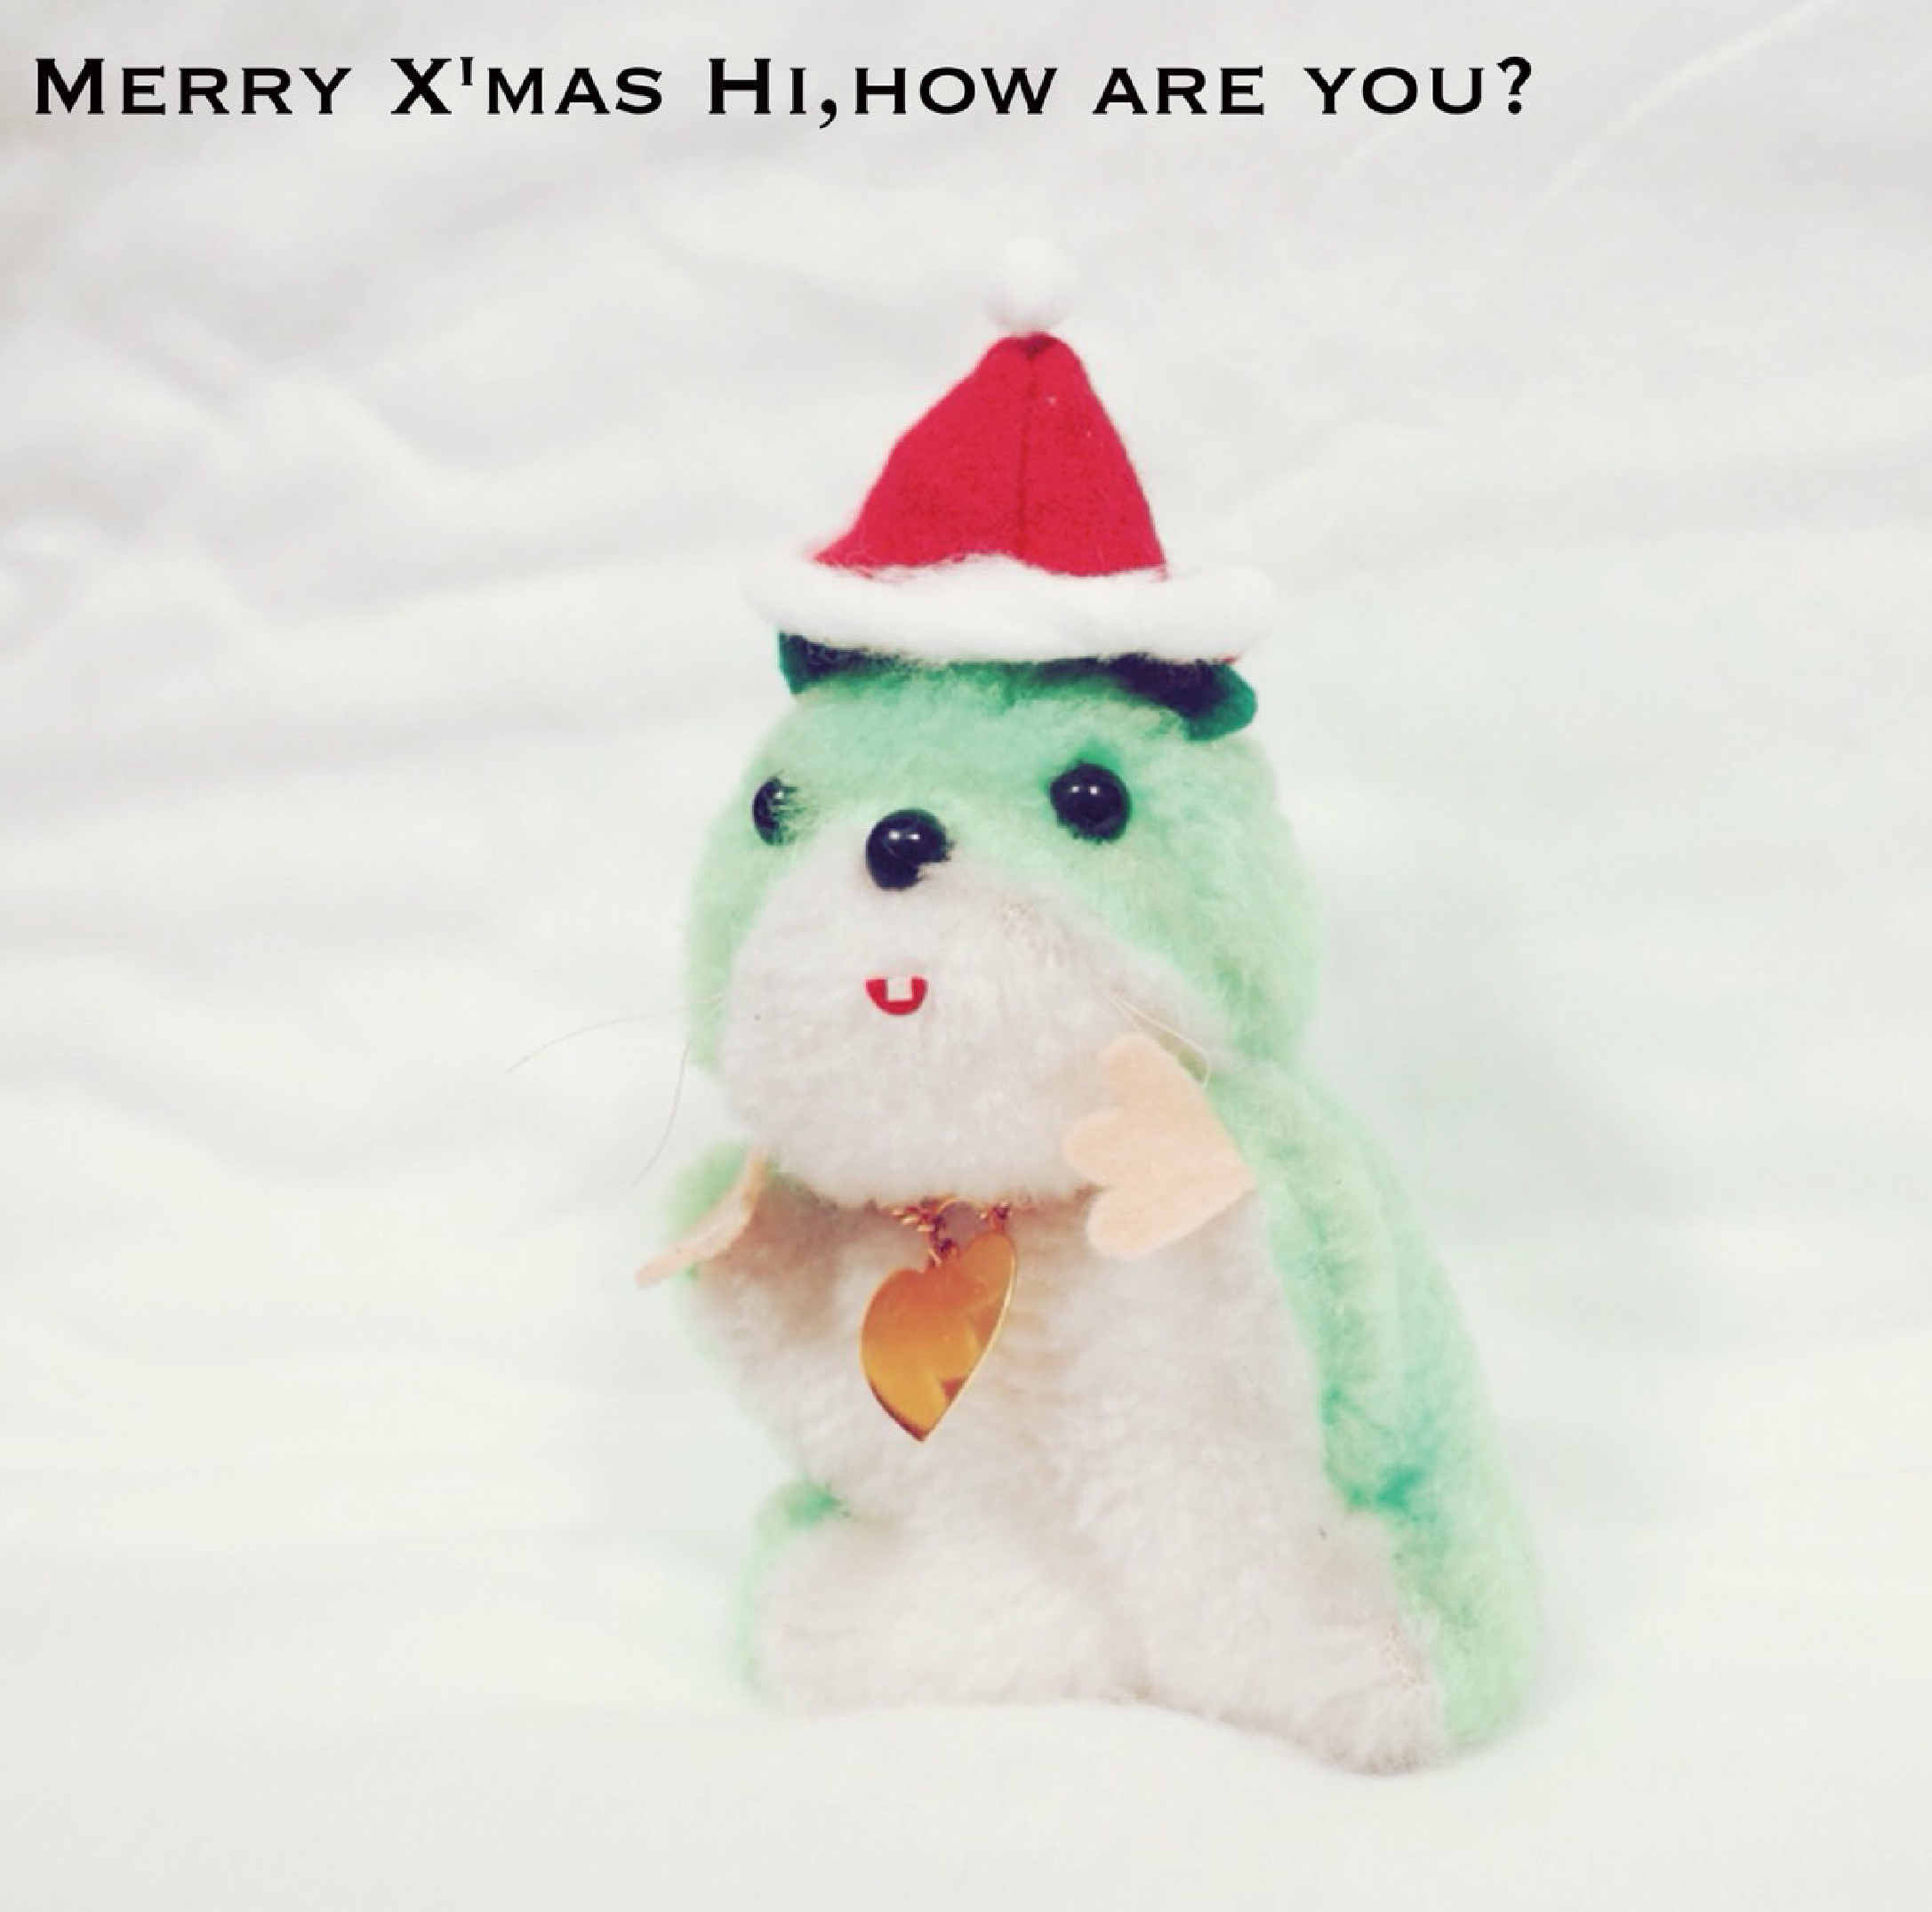 HI,HOW ARE YOU? / MERRY XMAS, HI,HOW ARE YOU?